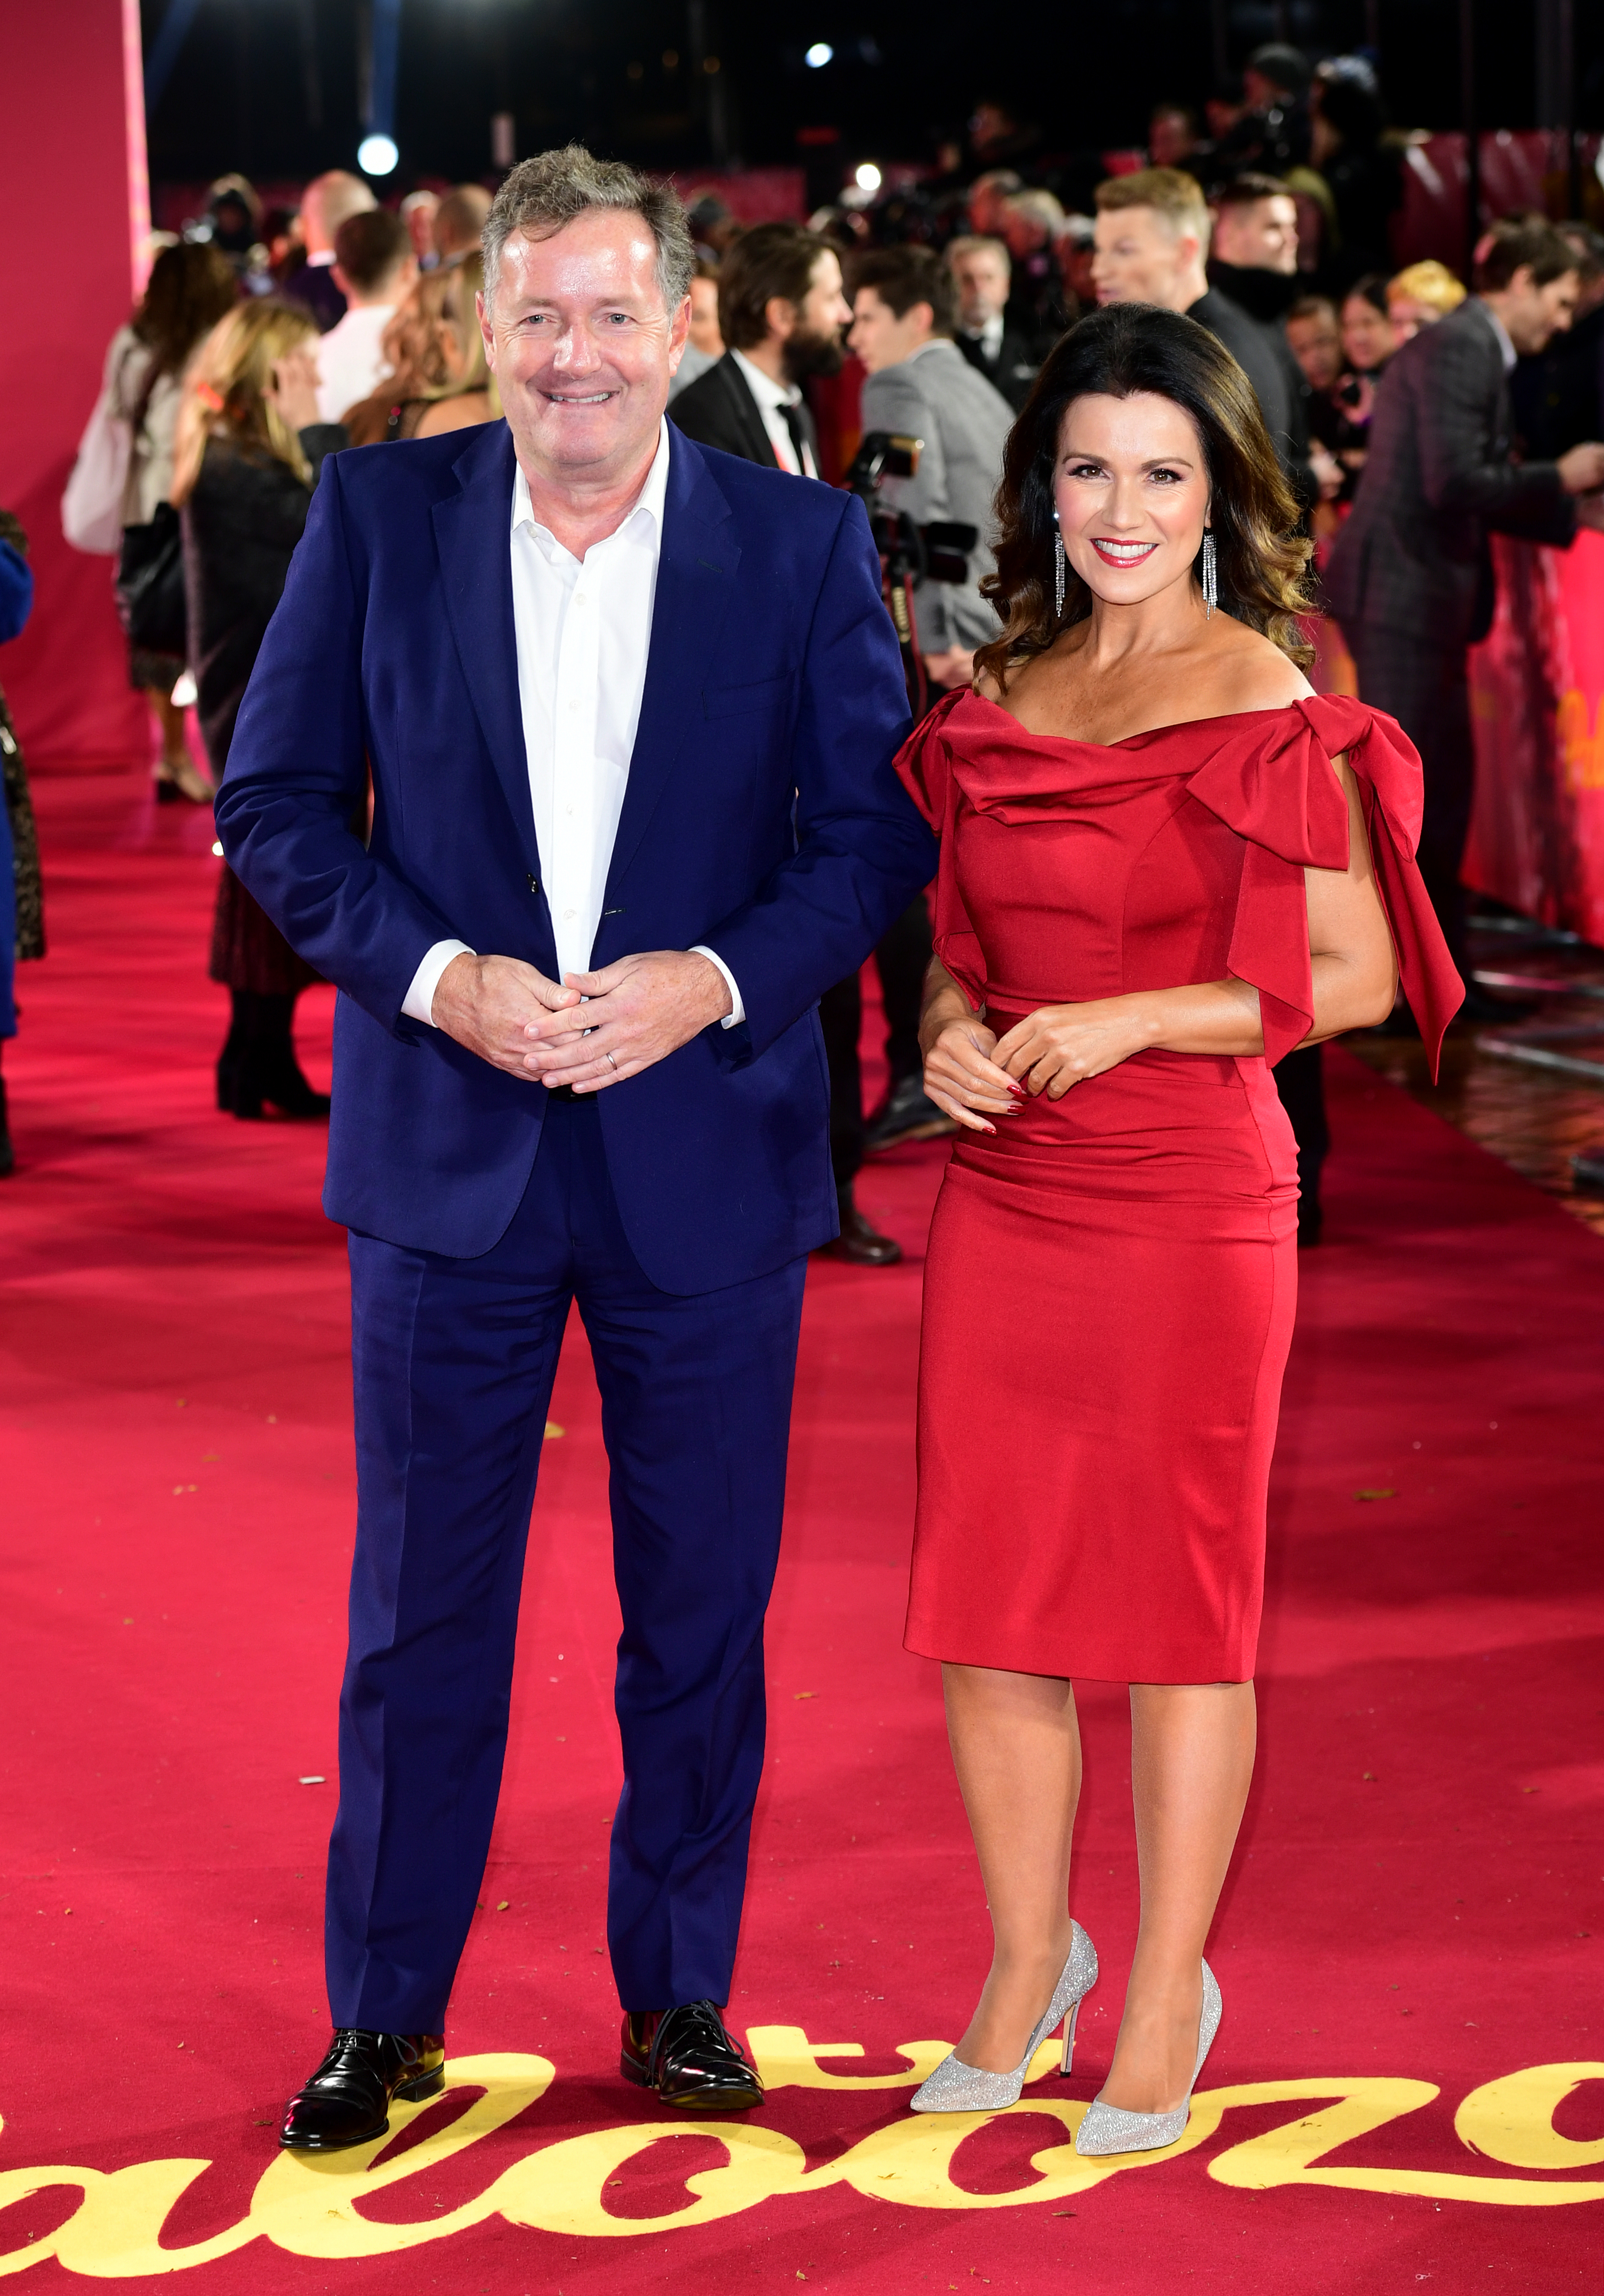 Piers Morgan and Susanna Reid arriving for the ITV Palooza held at the Royal Festival Hall, Southbank Centre, London.